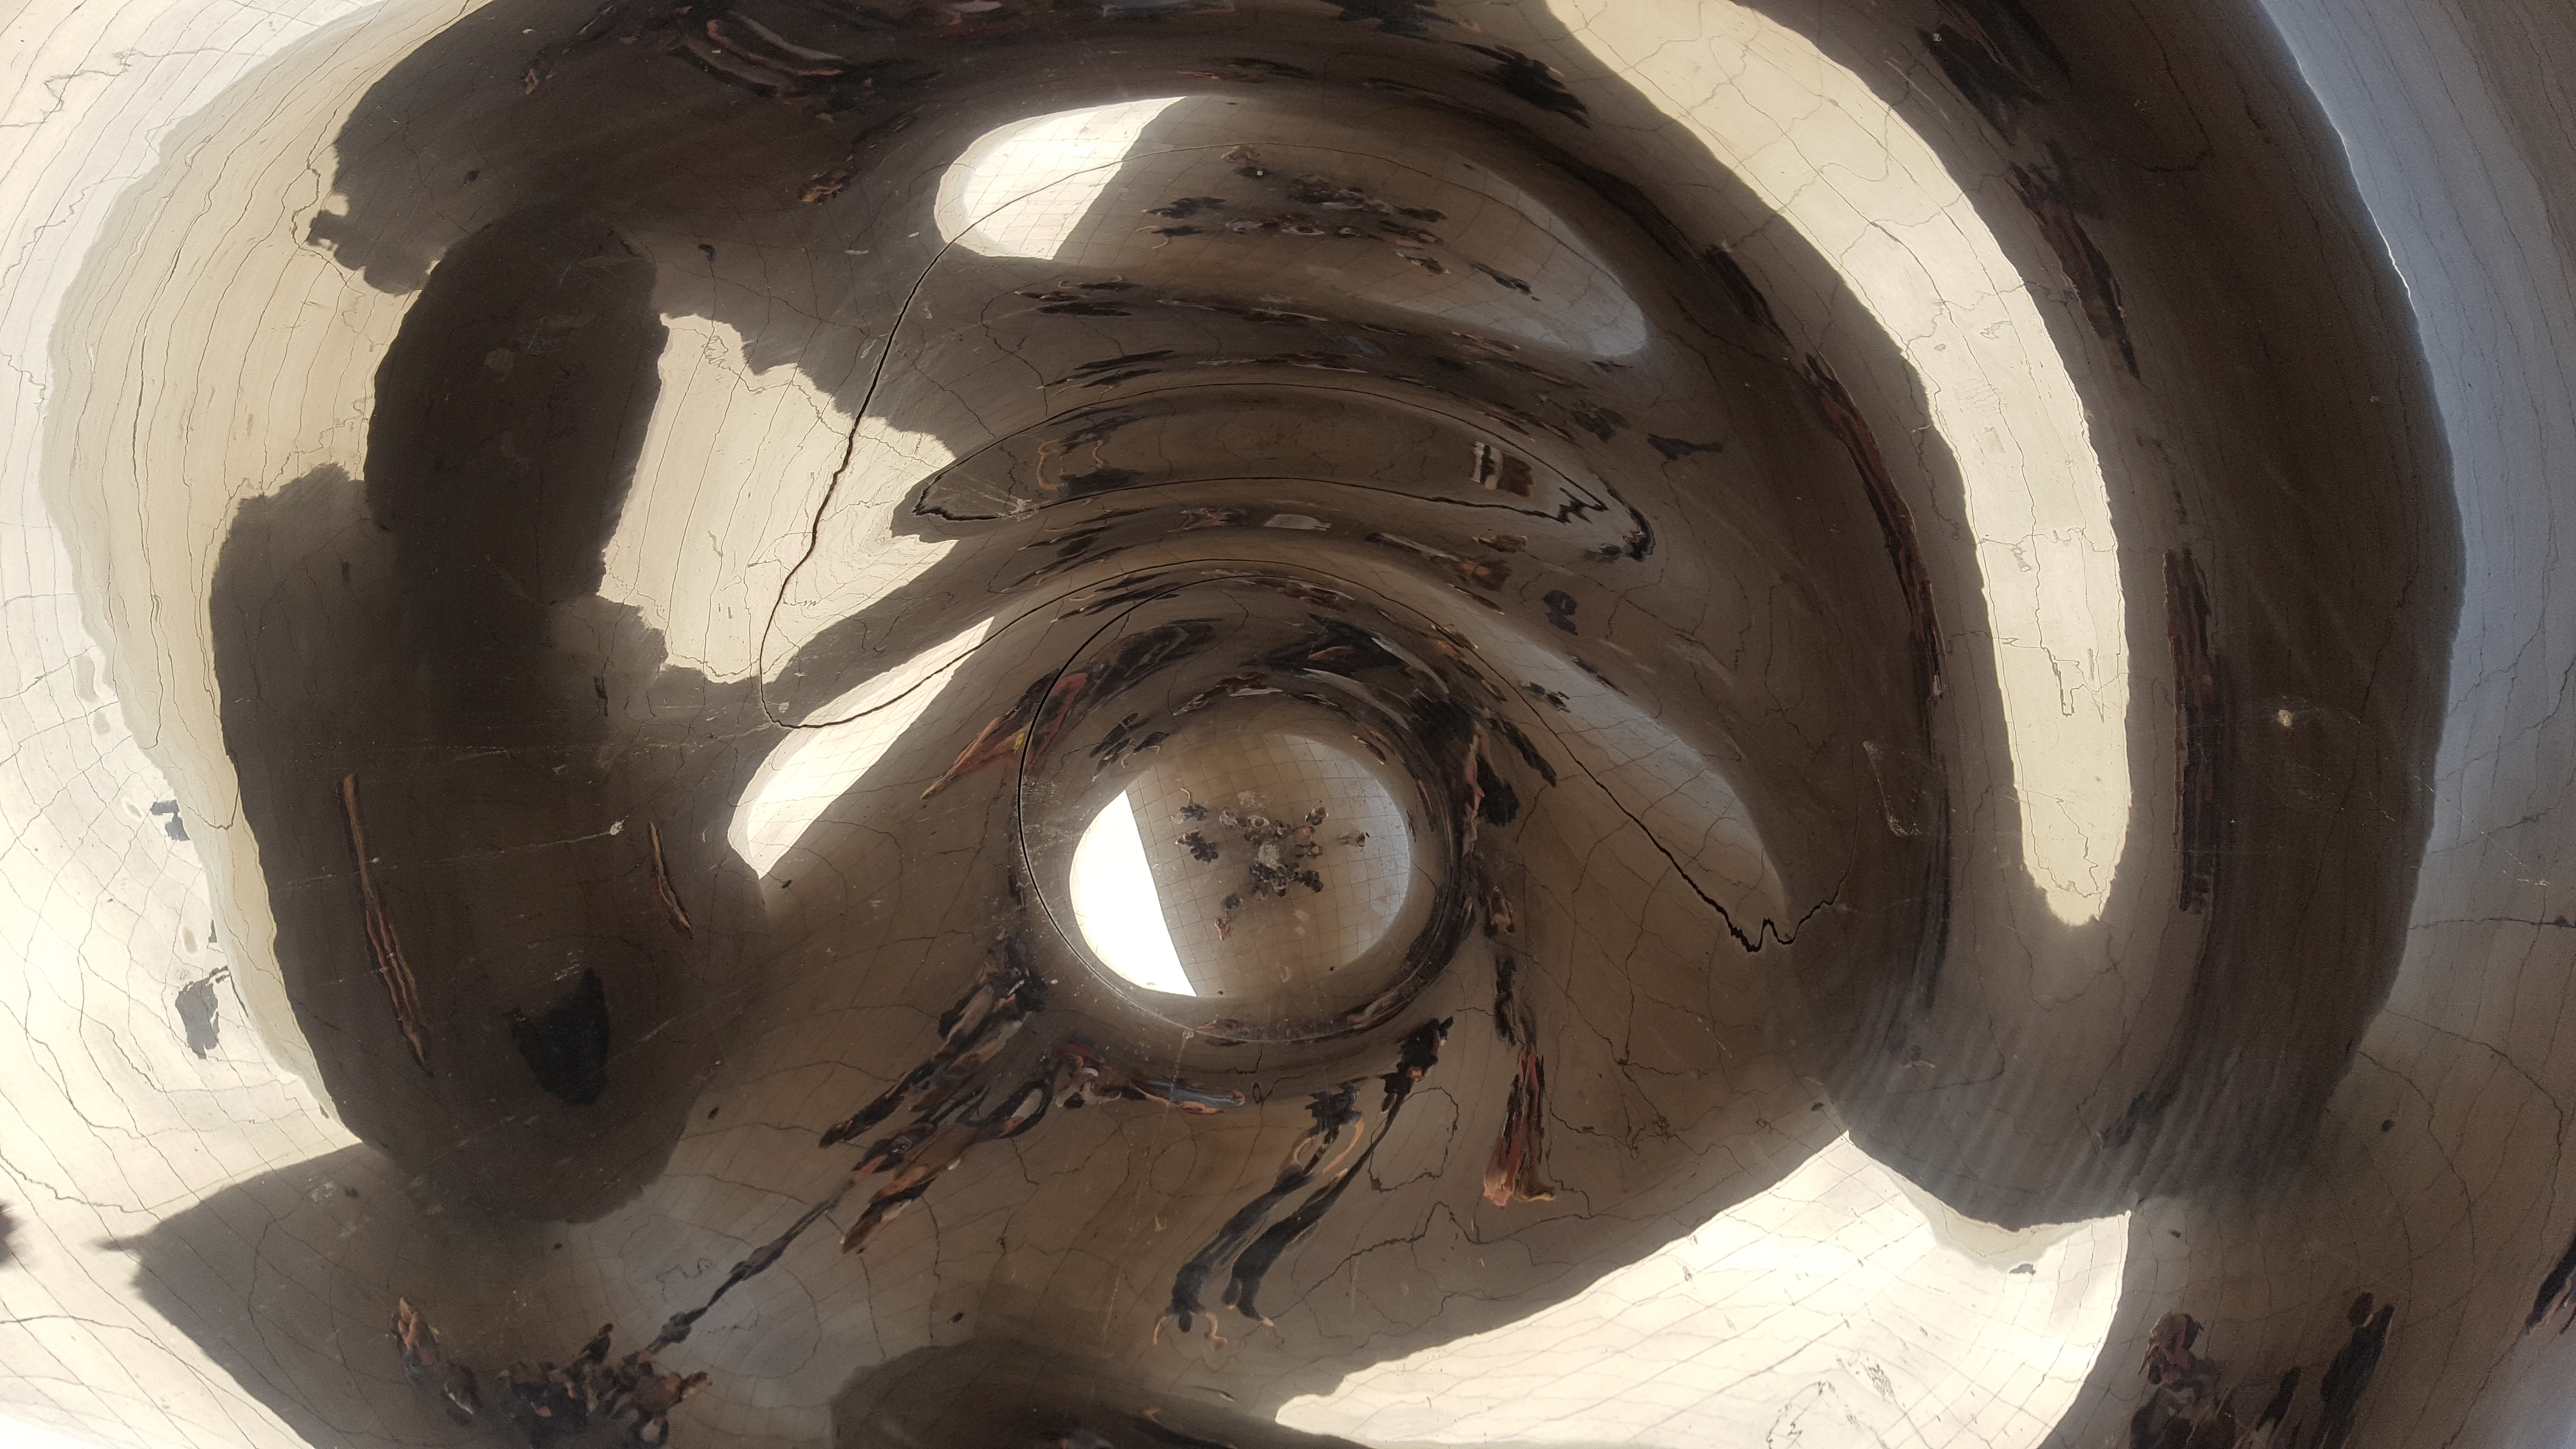 View from Underneath the Chicago Bean